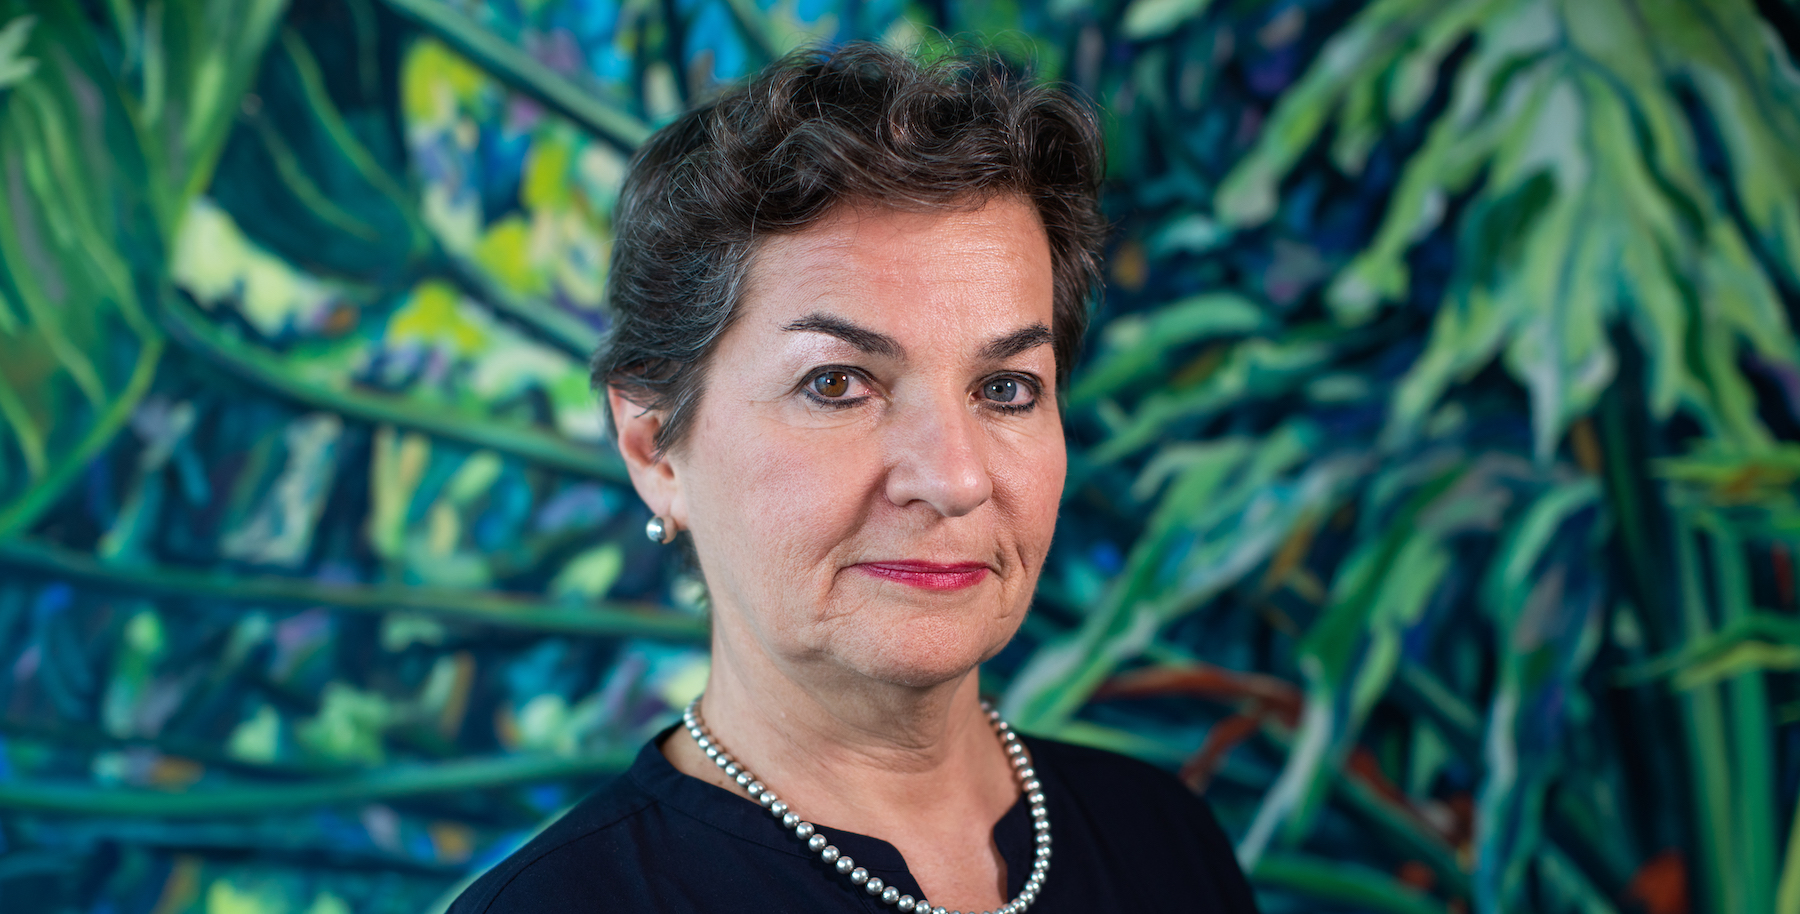 20190812 DSC07319 Jimena Mateo2 - Concordia to present the 2020 Leadership Award to Christiana Figueres at the 10th Anniversary Celebration